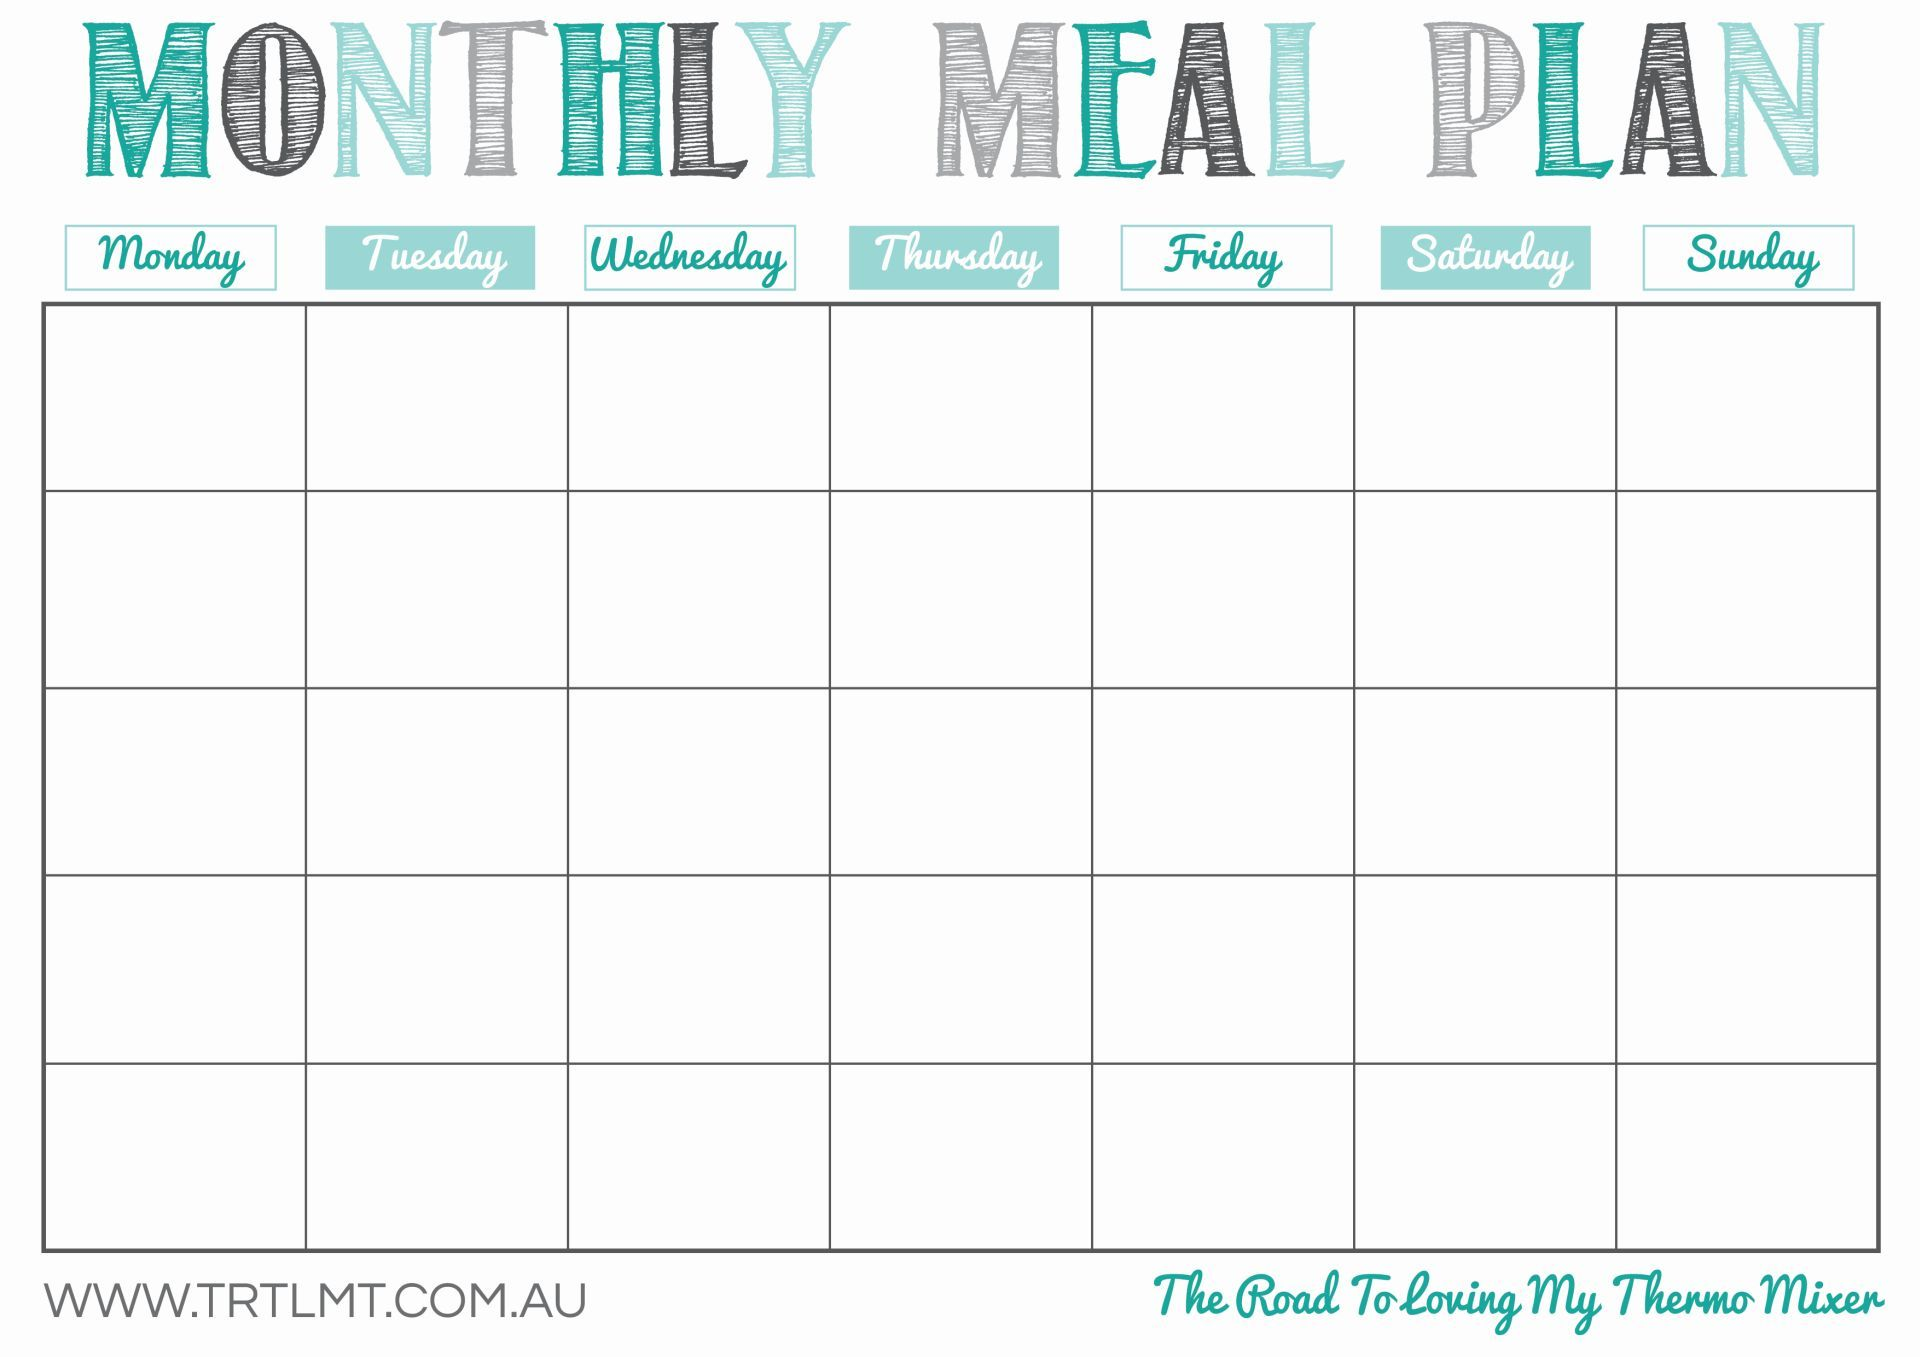 Monthly menu planner template download